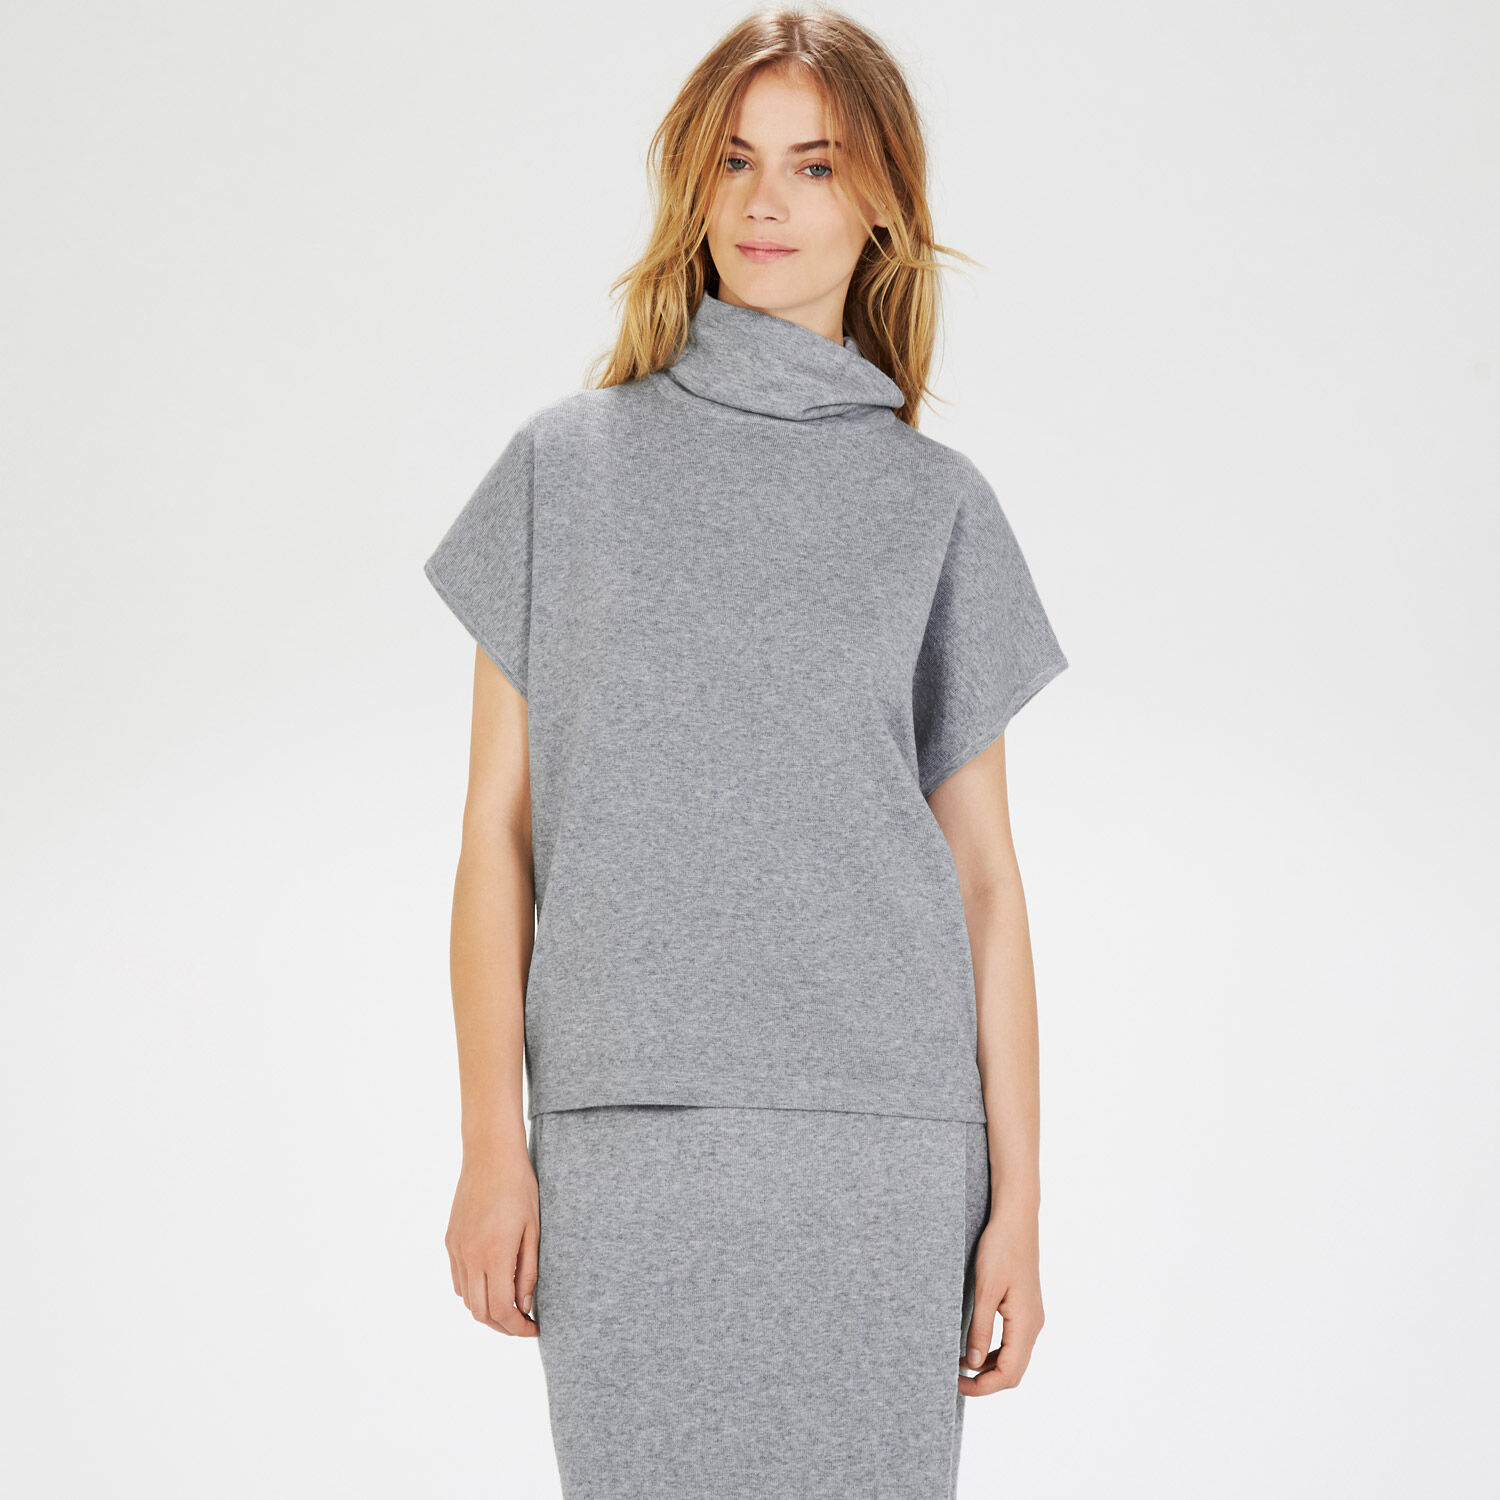 Warehouse, SQUARE FUNNEL NECK TOP Light Grey 1